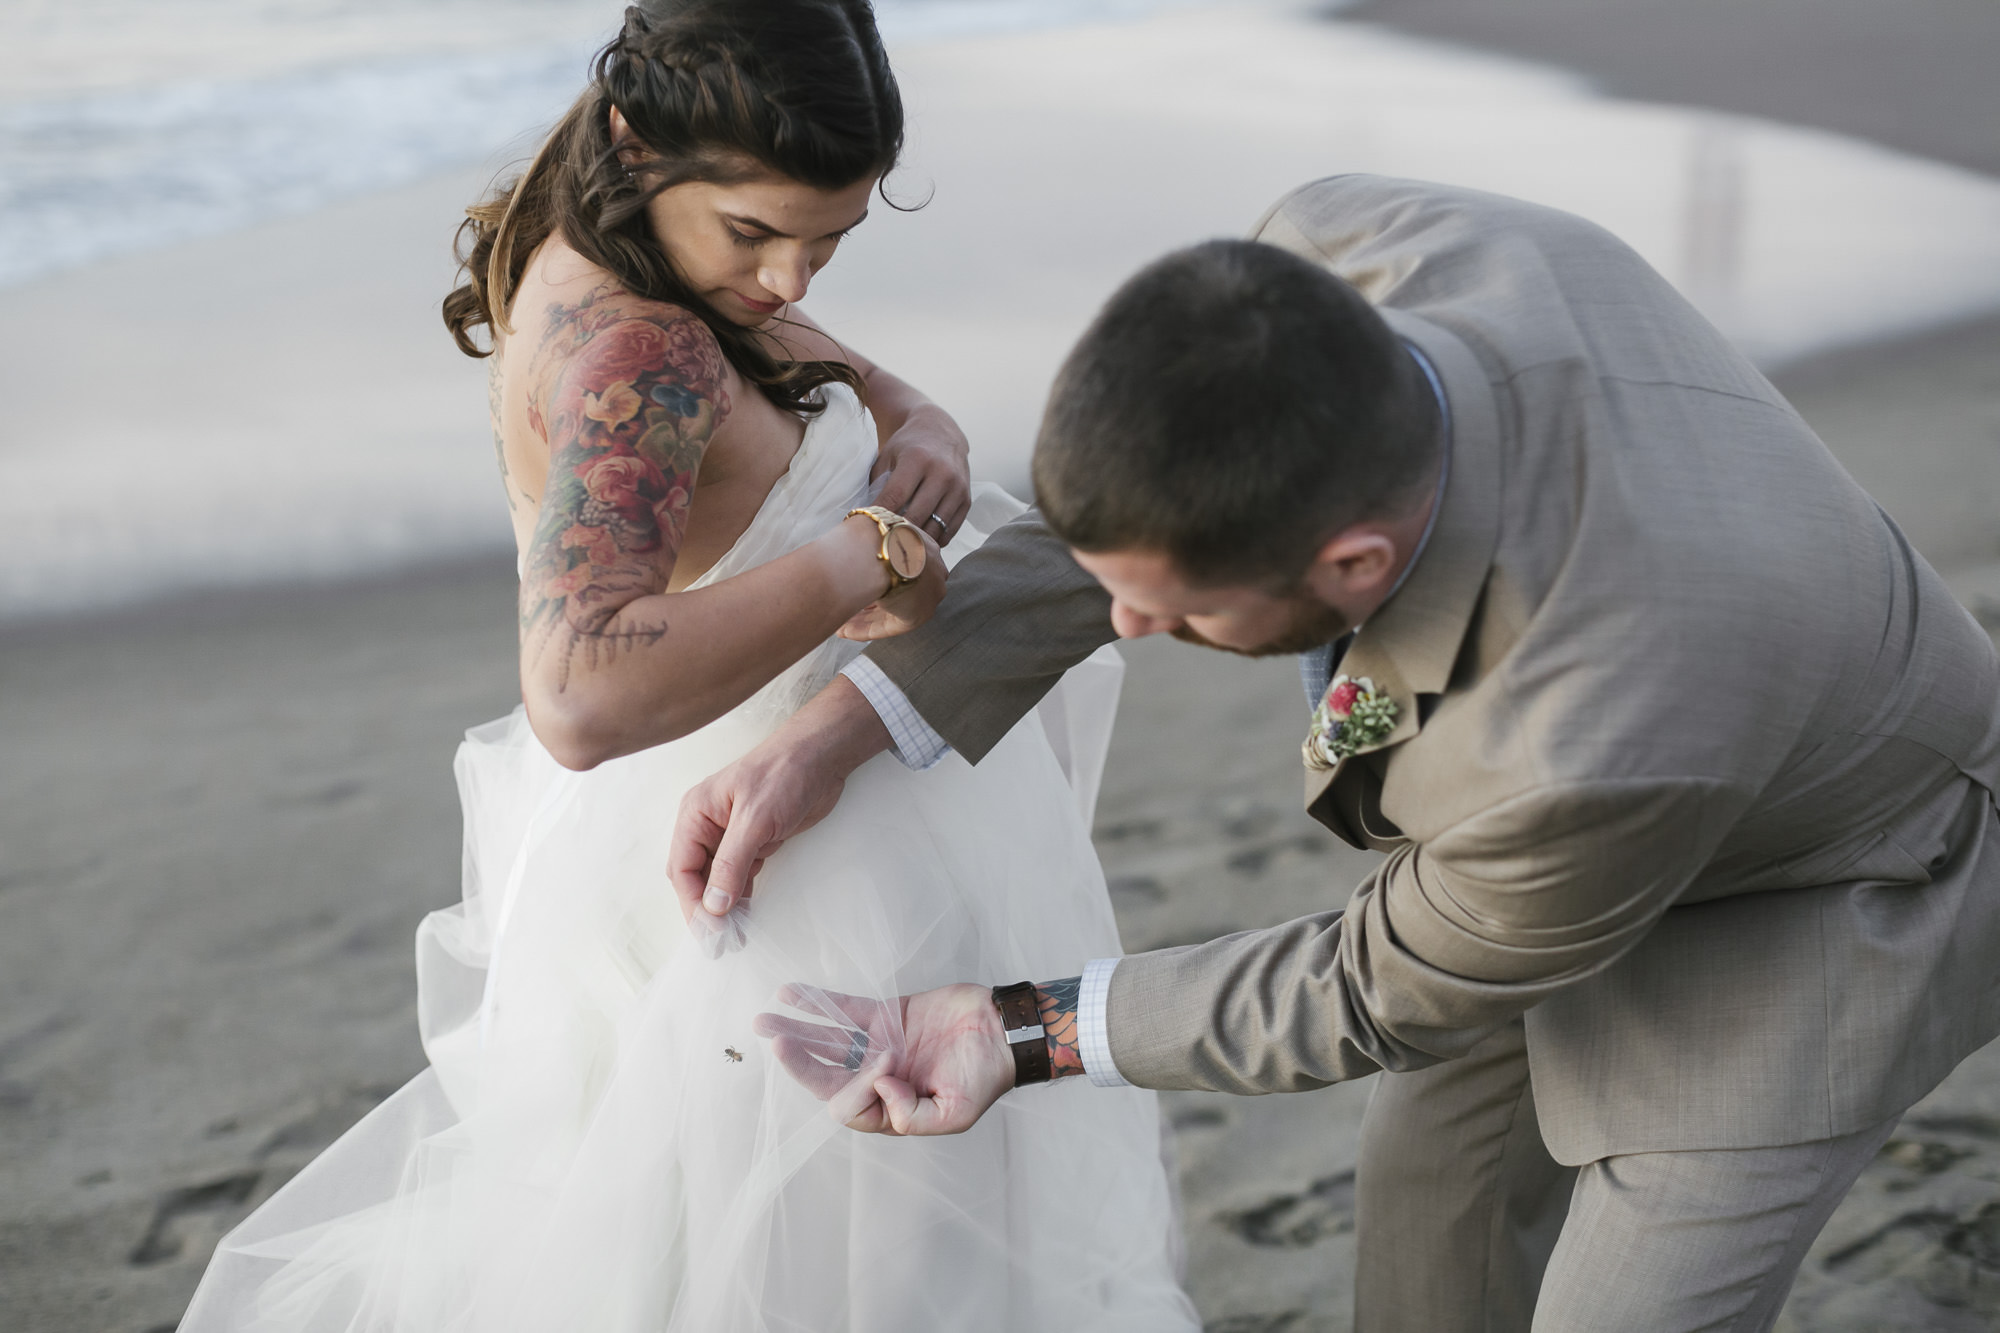 Groom helps get a bee out of his bride's wedding dress on the beach